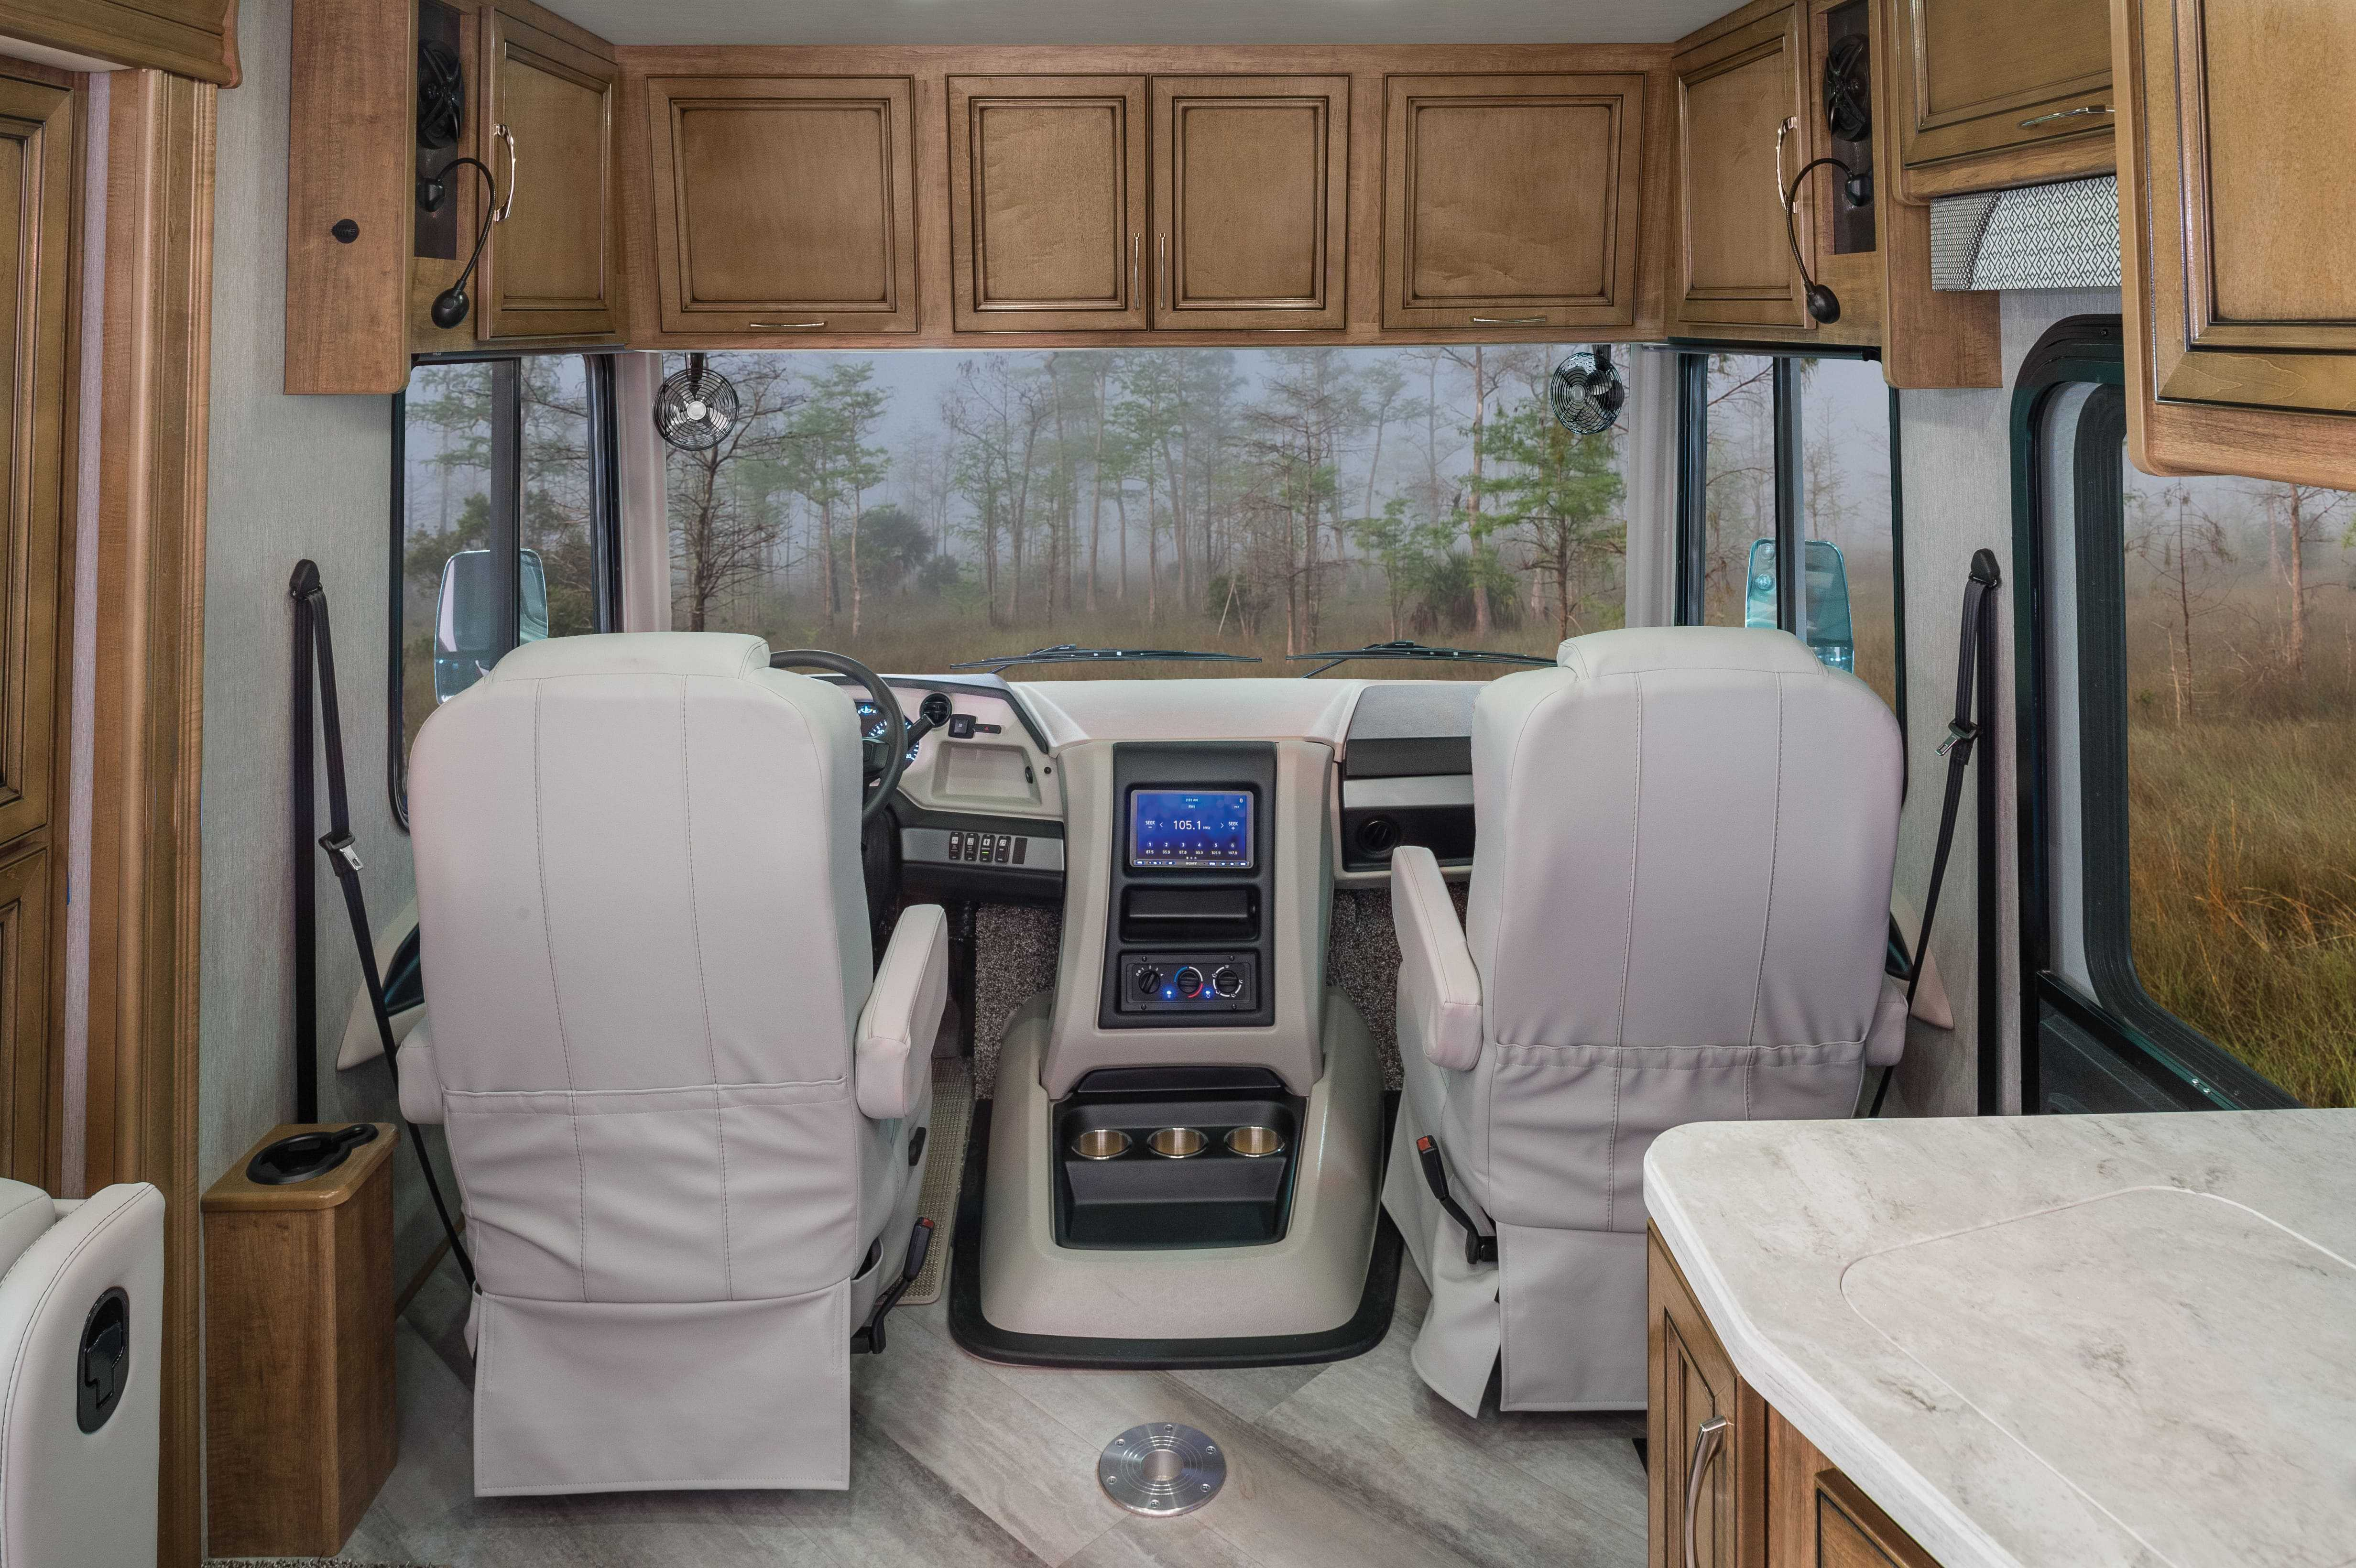 17 cabinetry abooveseat Bounder33 C MY22 Quicksilver E Chestnut1071 min